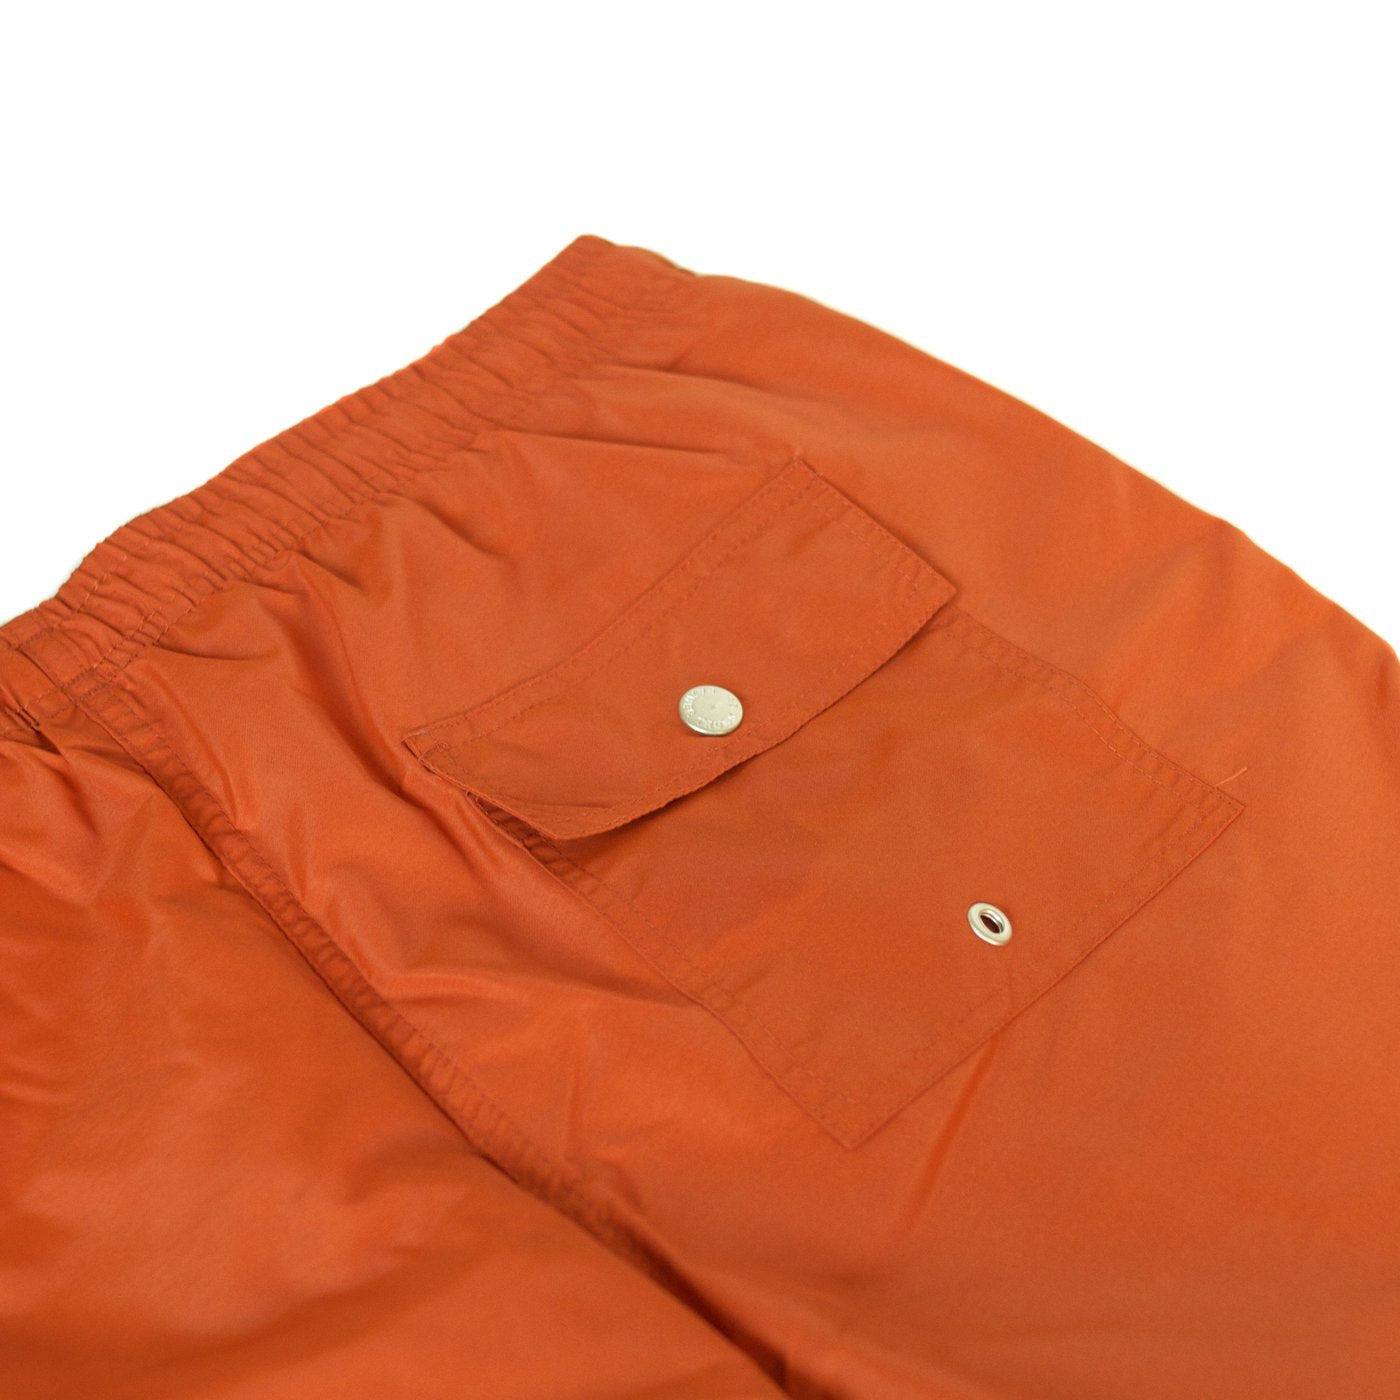 BATHER M'S SHORTS SOLID ORANGE SWIM TRUNK